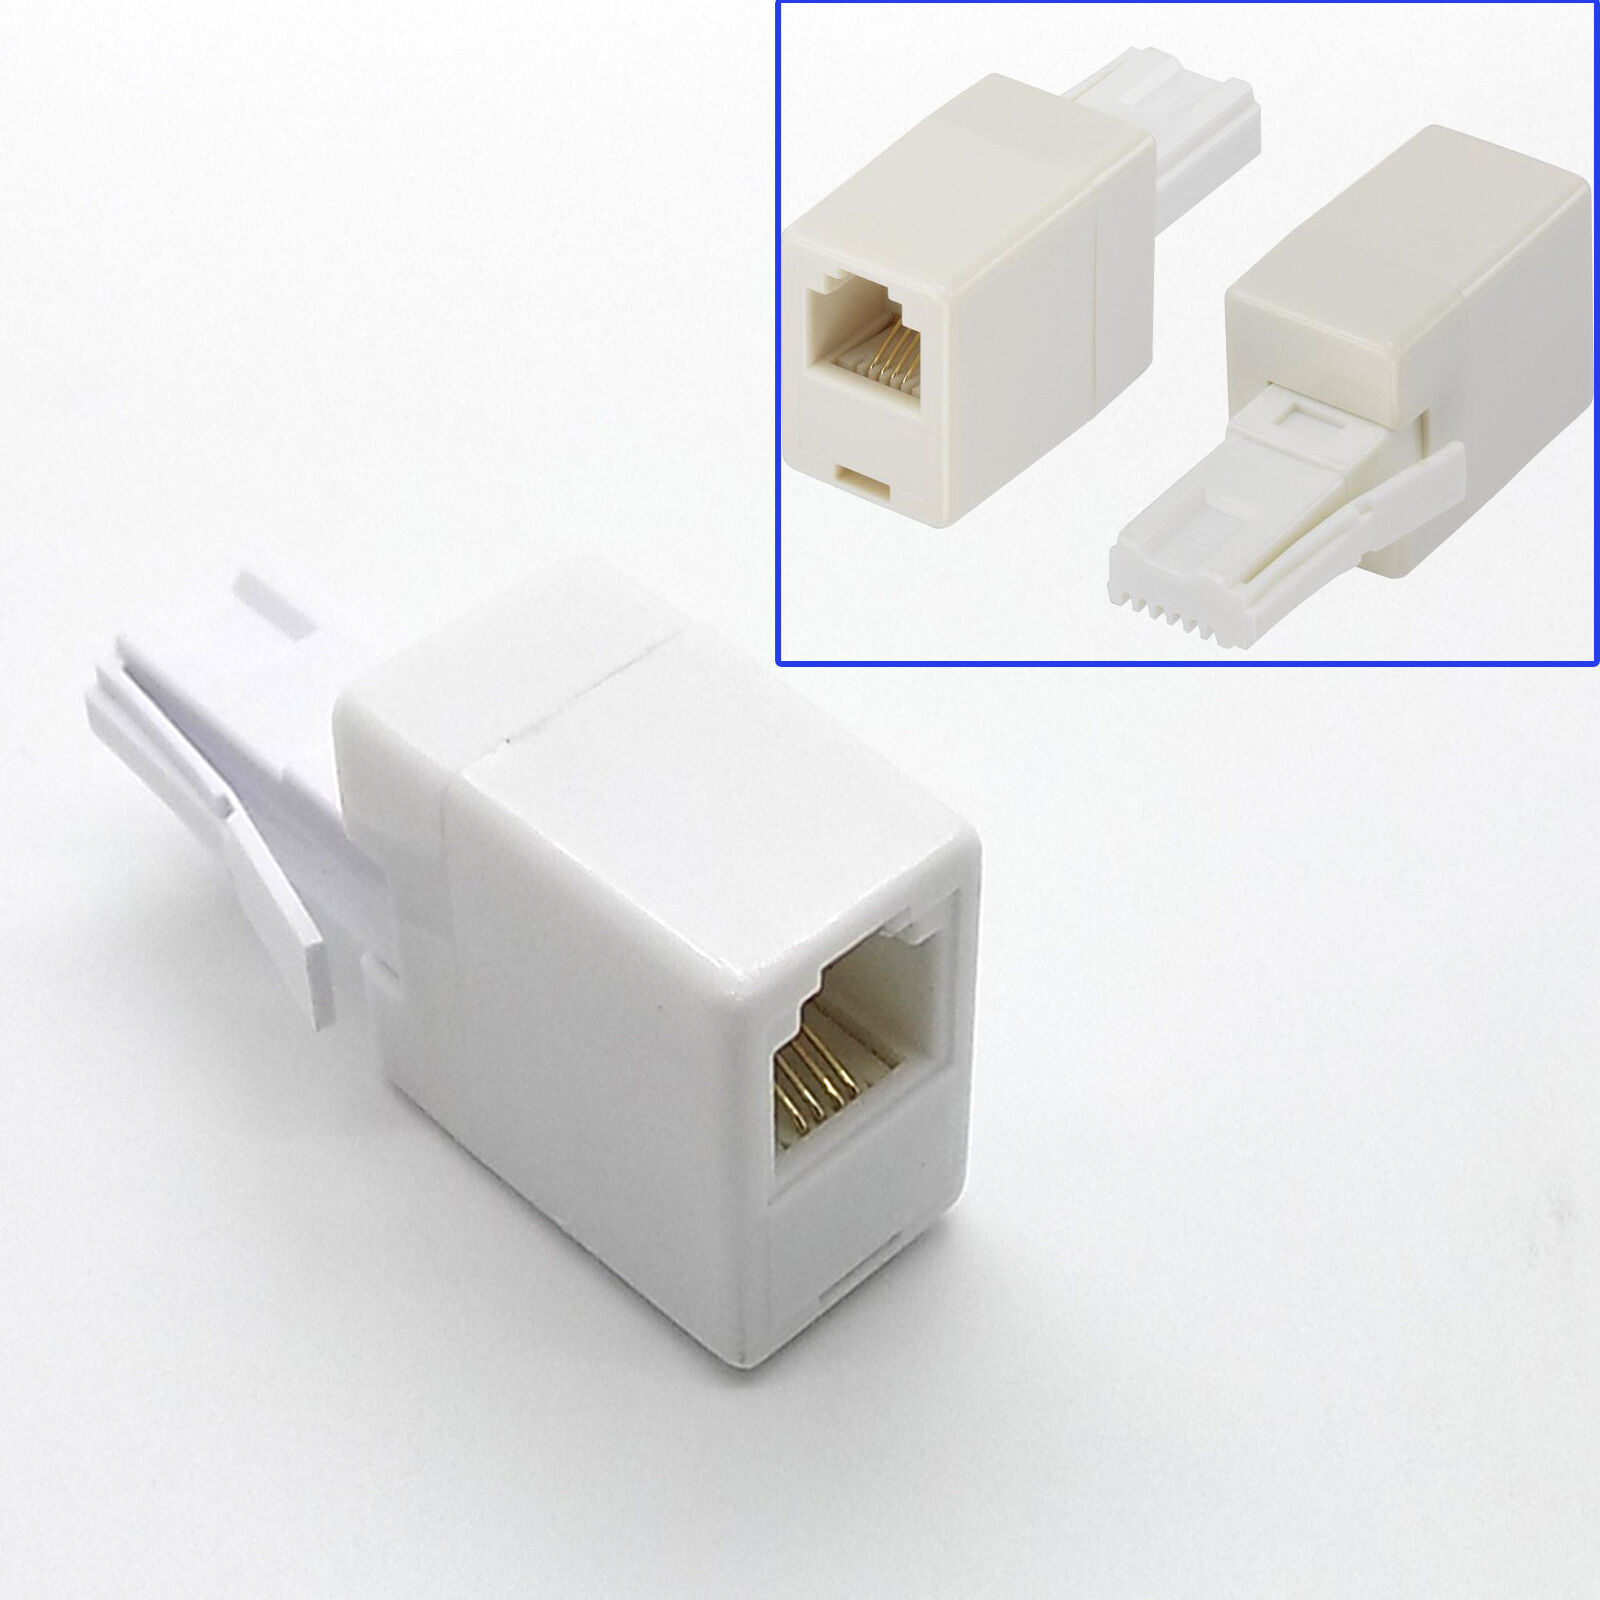 Uk Bt Telephone Plug To Rj11 Socket Adapter Adaptor Connector 6p4c Wiring 1 Of 3only 0 Available